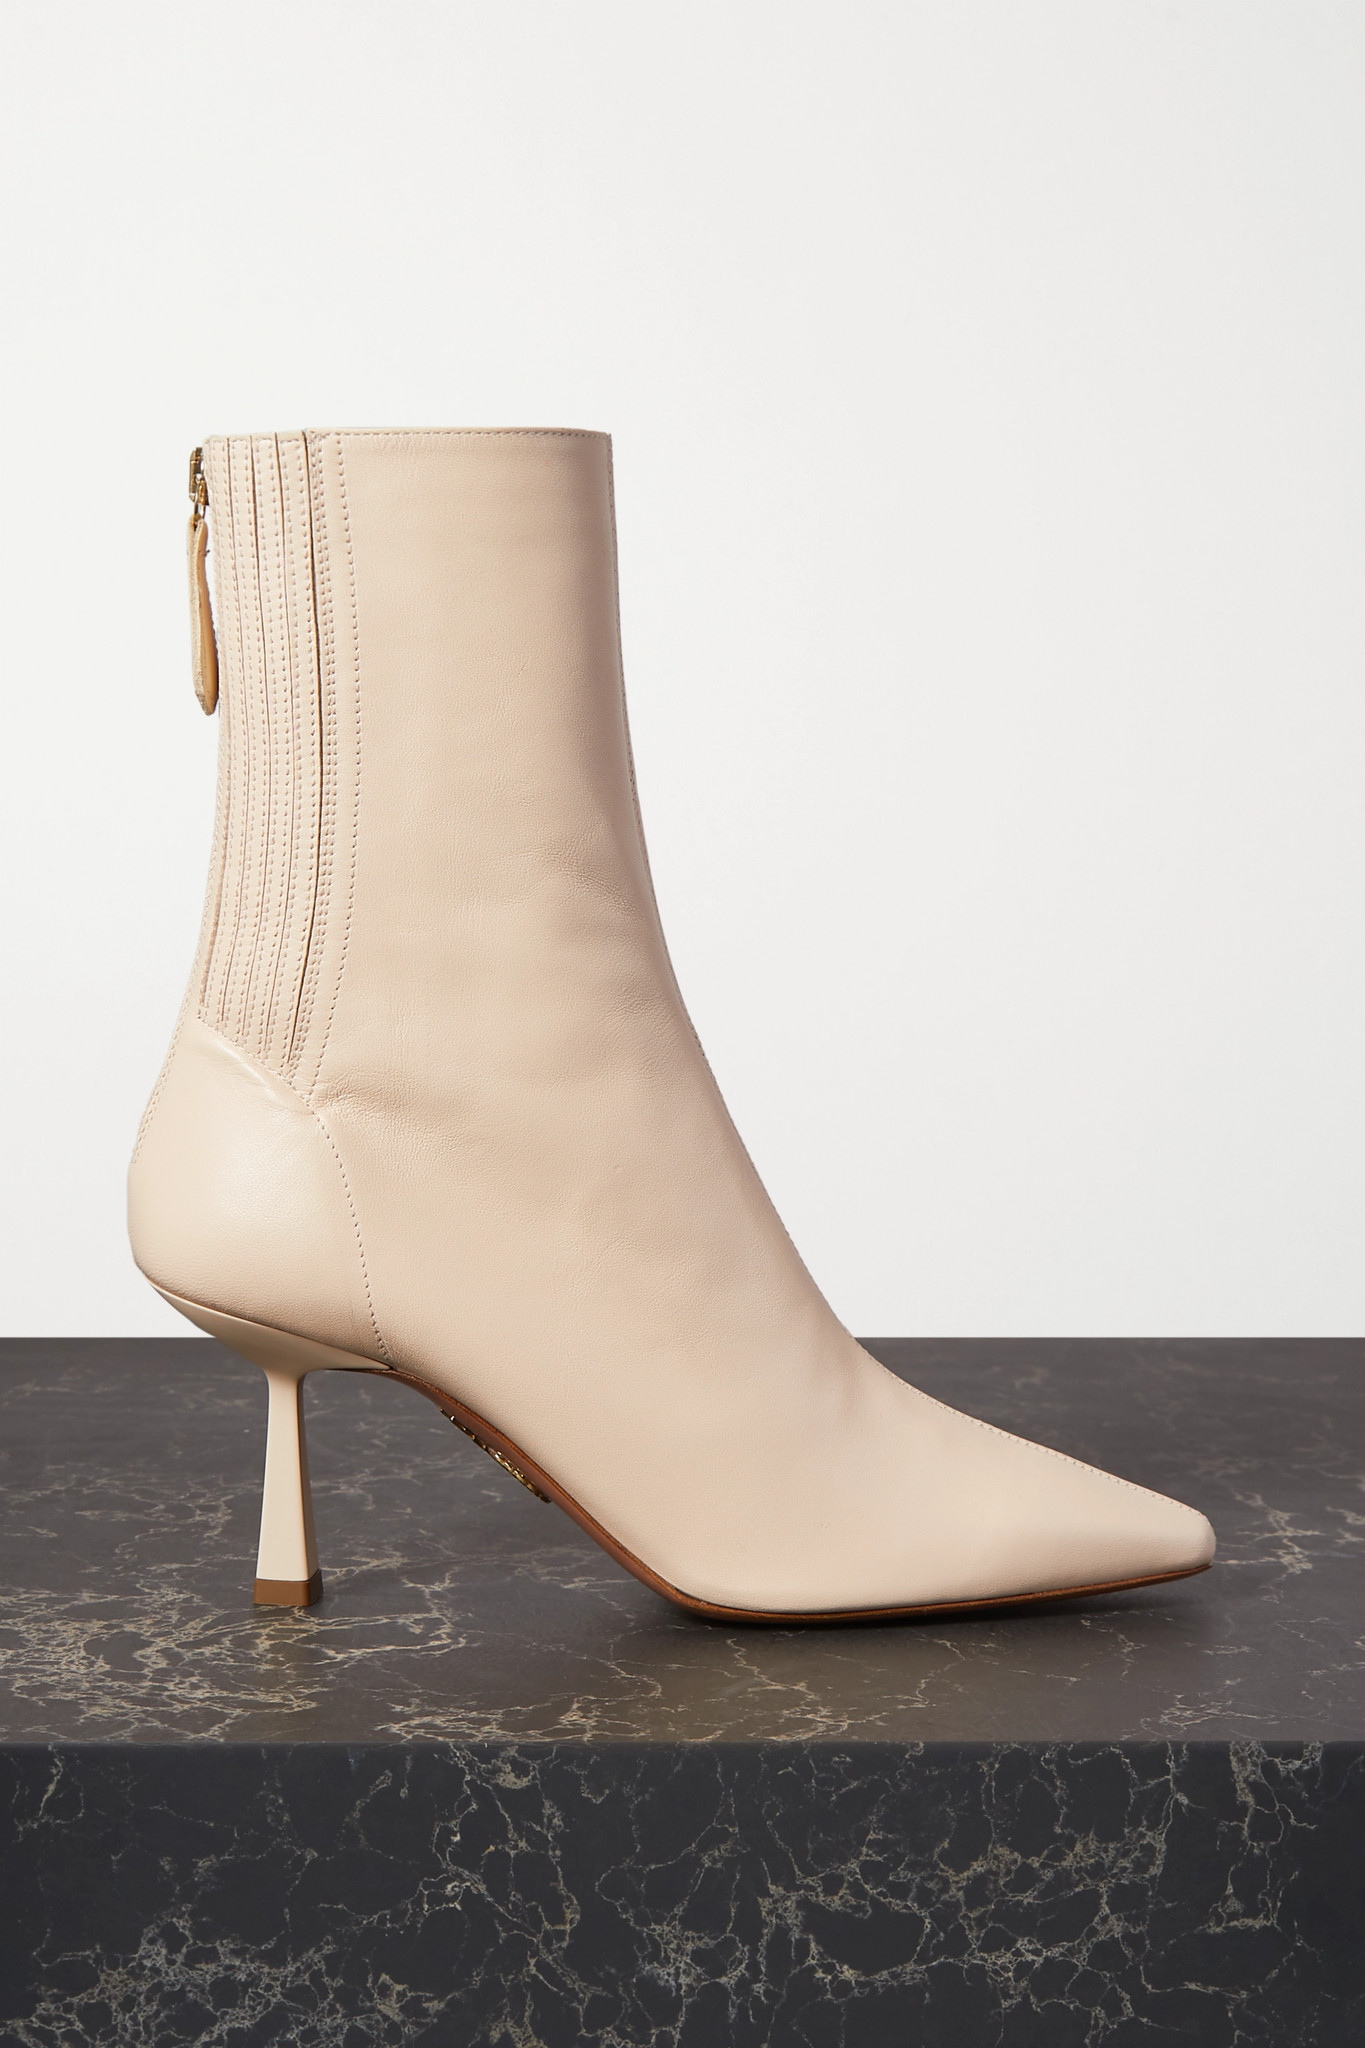 AQUAZZURA - Curzon 75 Leather Ankle Boots - Off-white - IT38